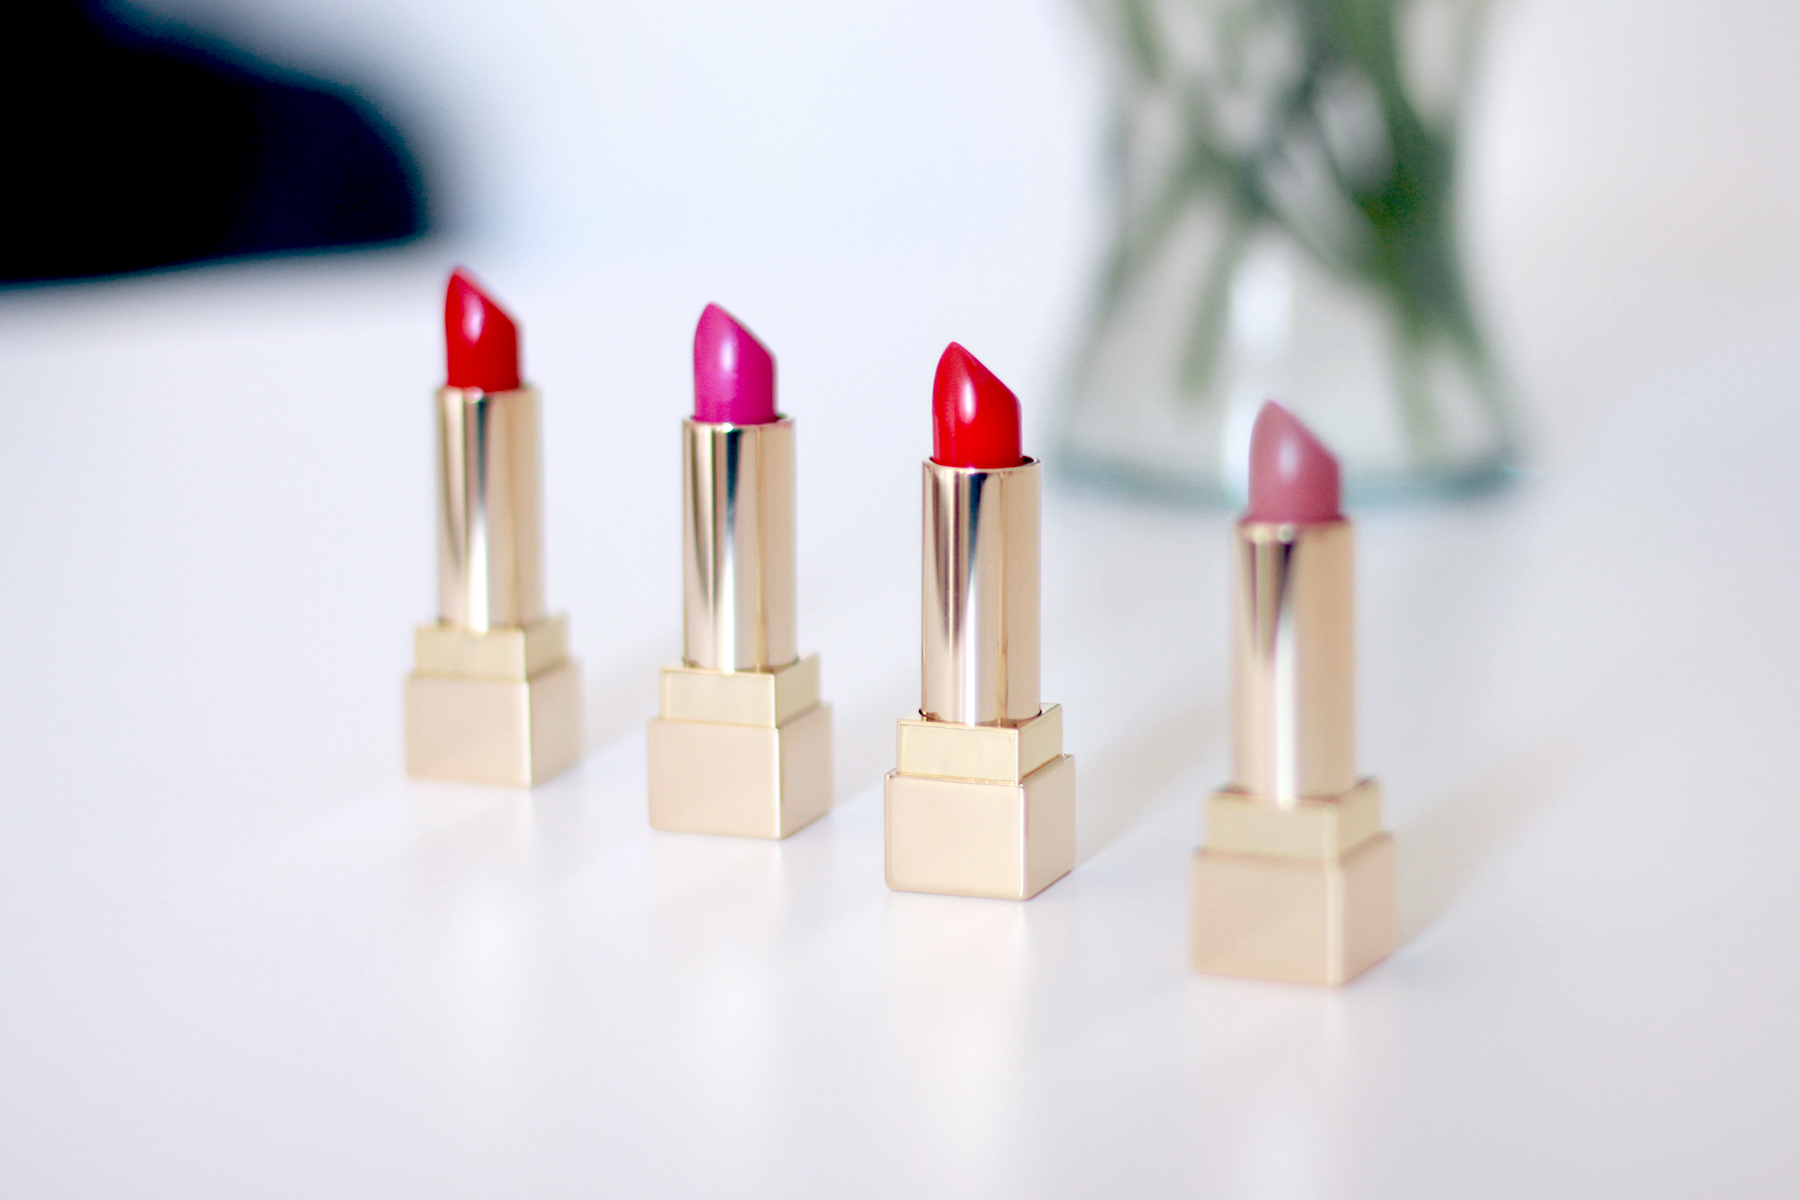 the four icons ysl beauté rouge pur couture lipstick lippenstift rot yves saint laurent gewinnspiel gewinne win icons cats & dogs blog ricarda schernus fashion blogger germany düsseldorf hannover berlin 1